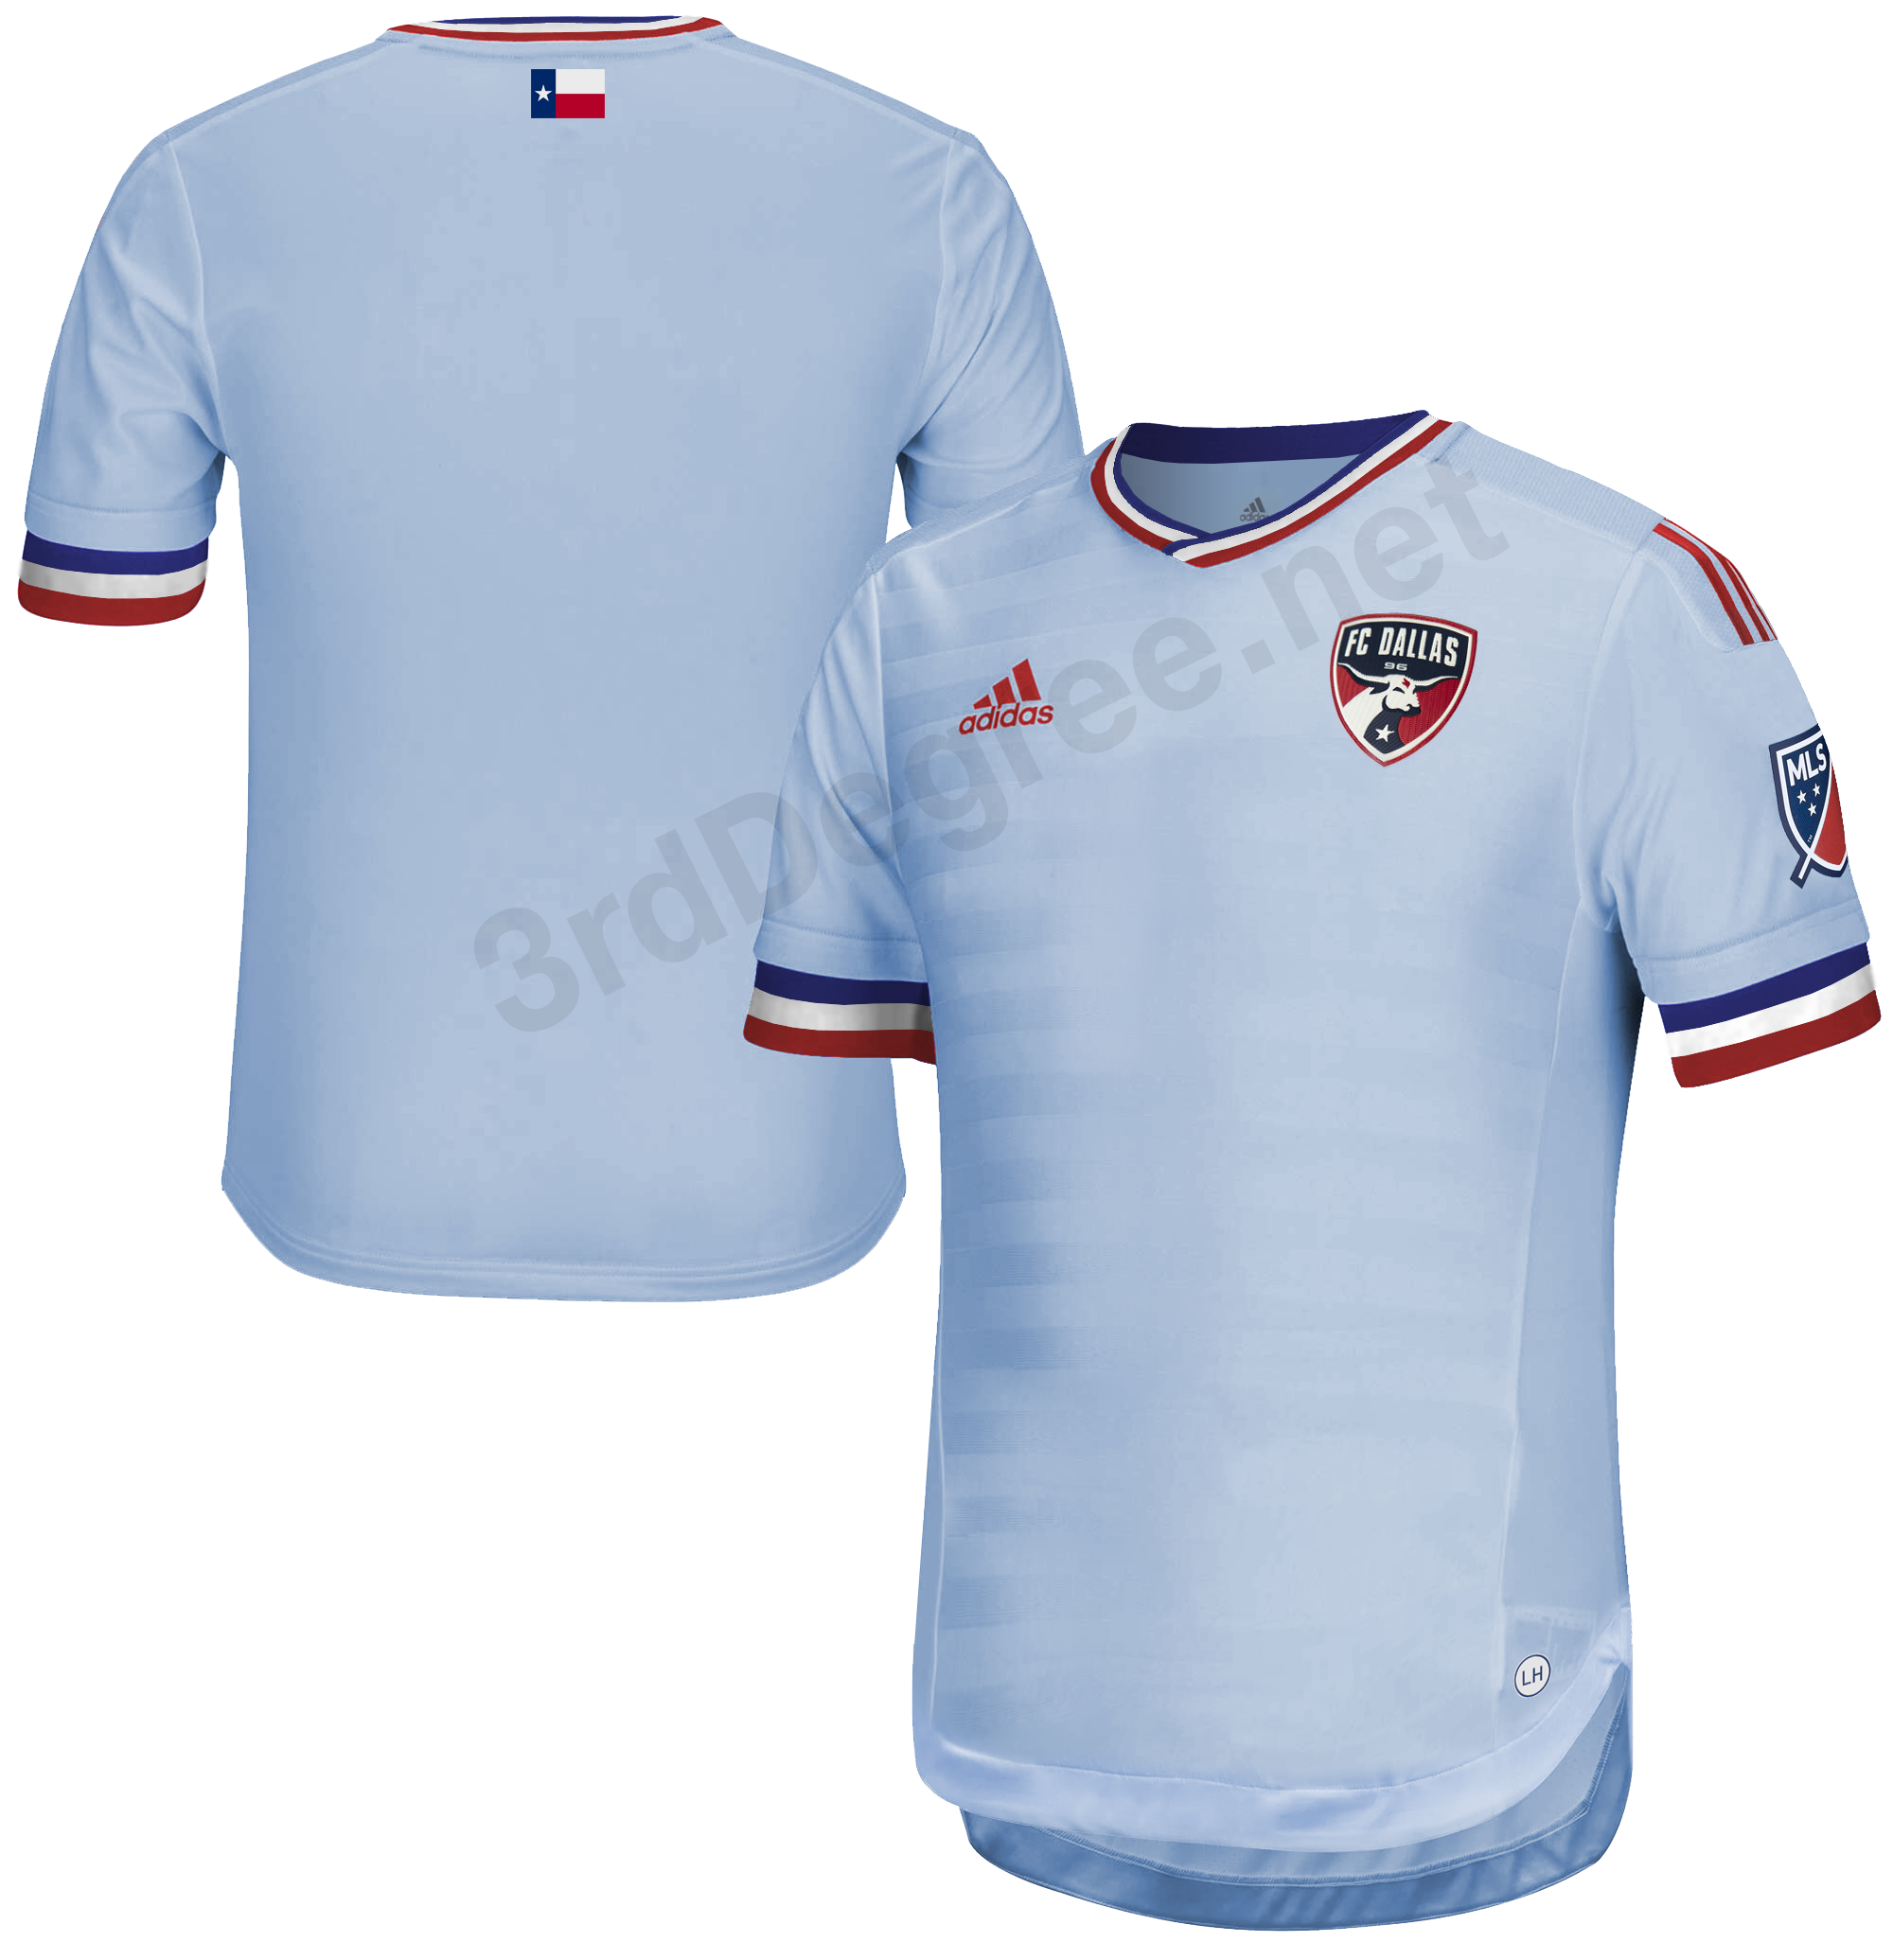 2021-2022 FC Dallas secondary jersey leaked - 3rd Degree